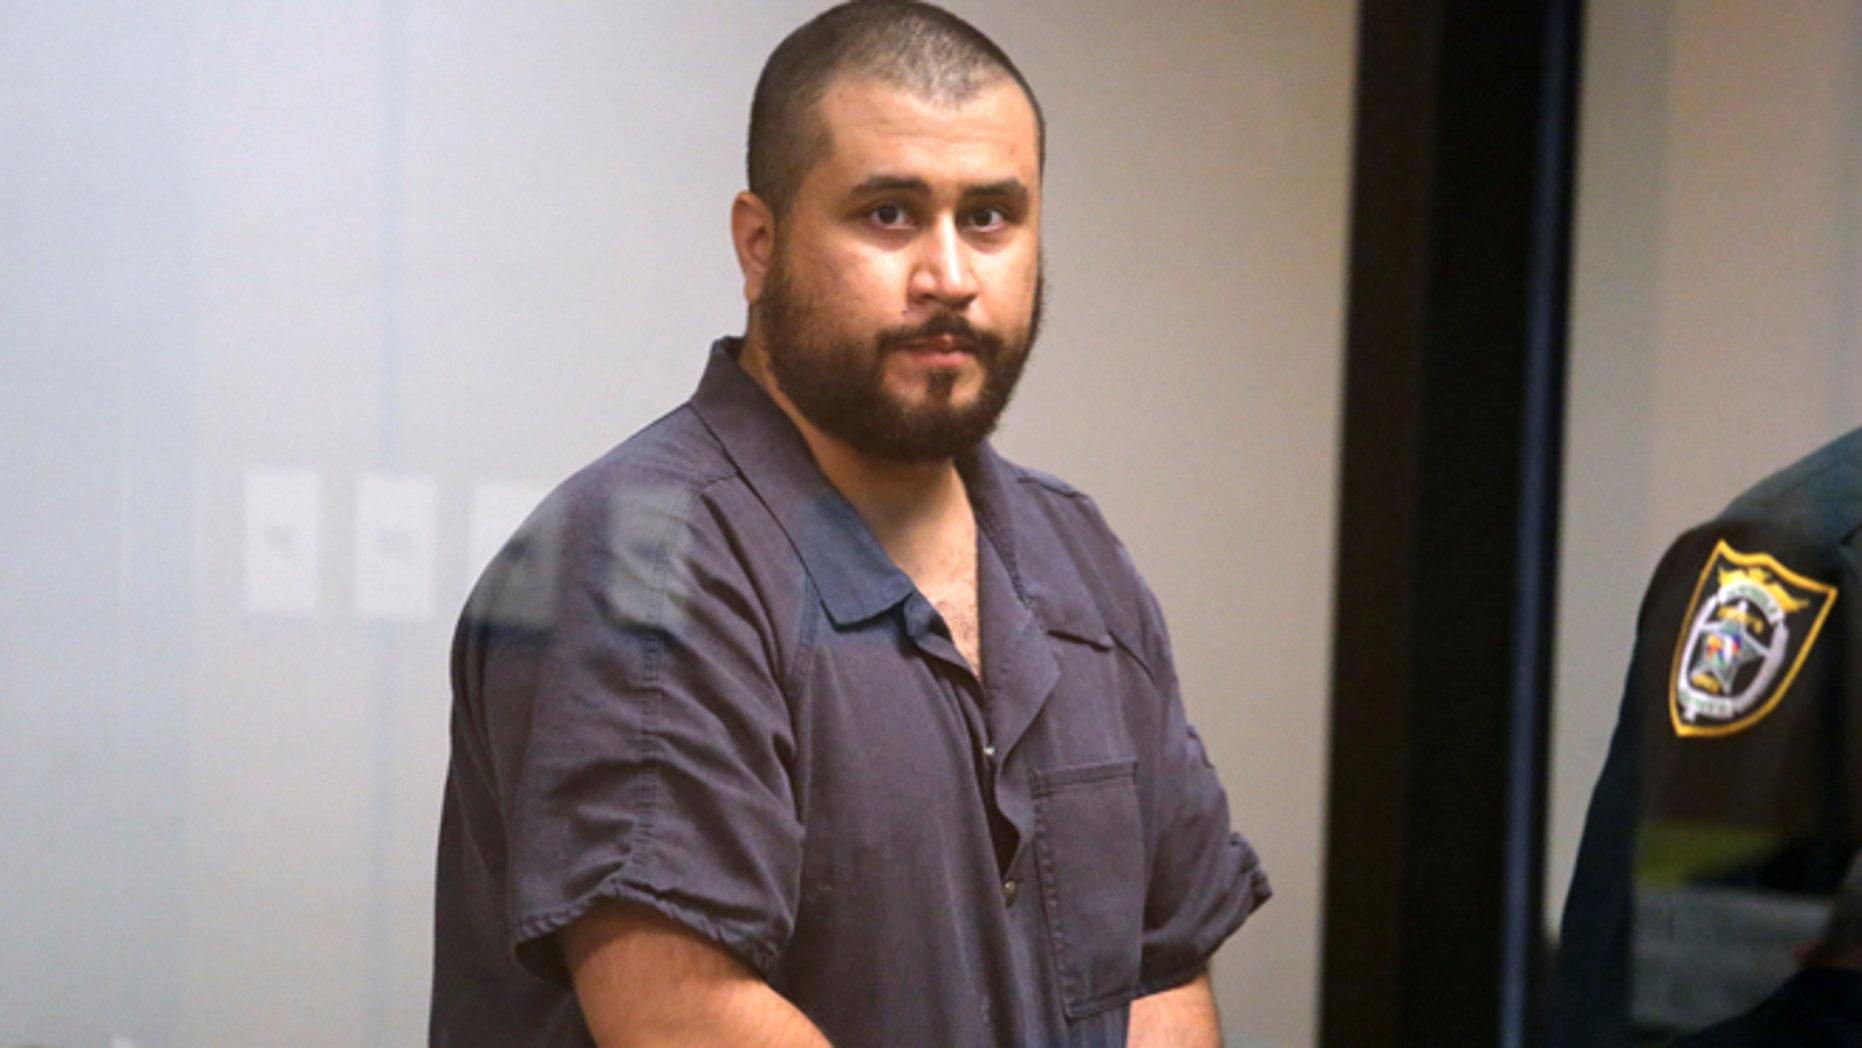 Nov. 19, 2013: George Zimmerman, the acquitted shooter in the death of Trayvon Martin, arrives in Courtroom J2 to face a Seminole circuit judge in Sanford, Florida.